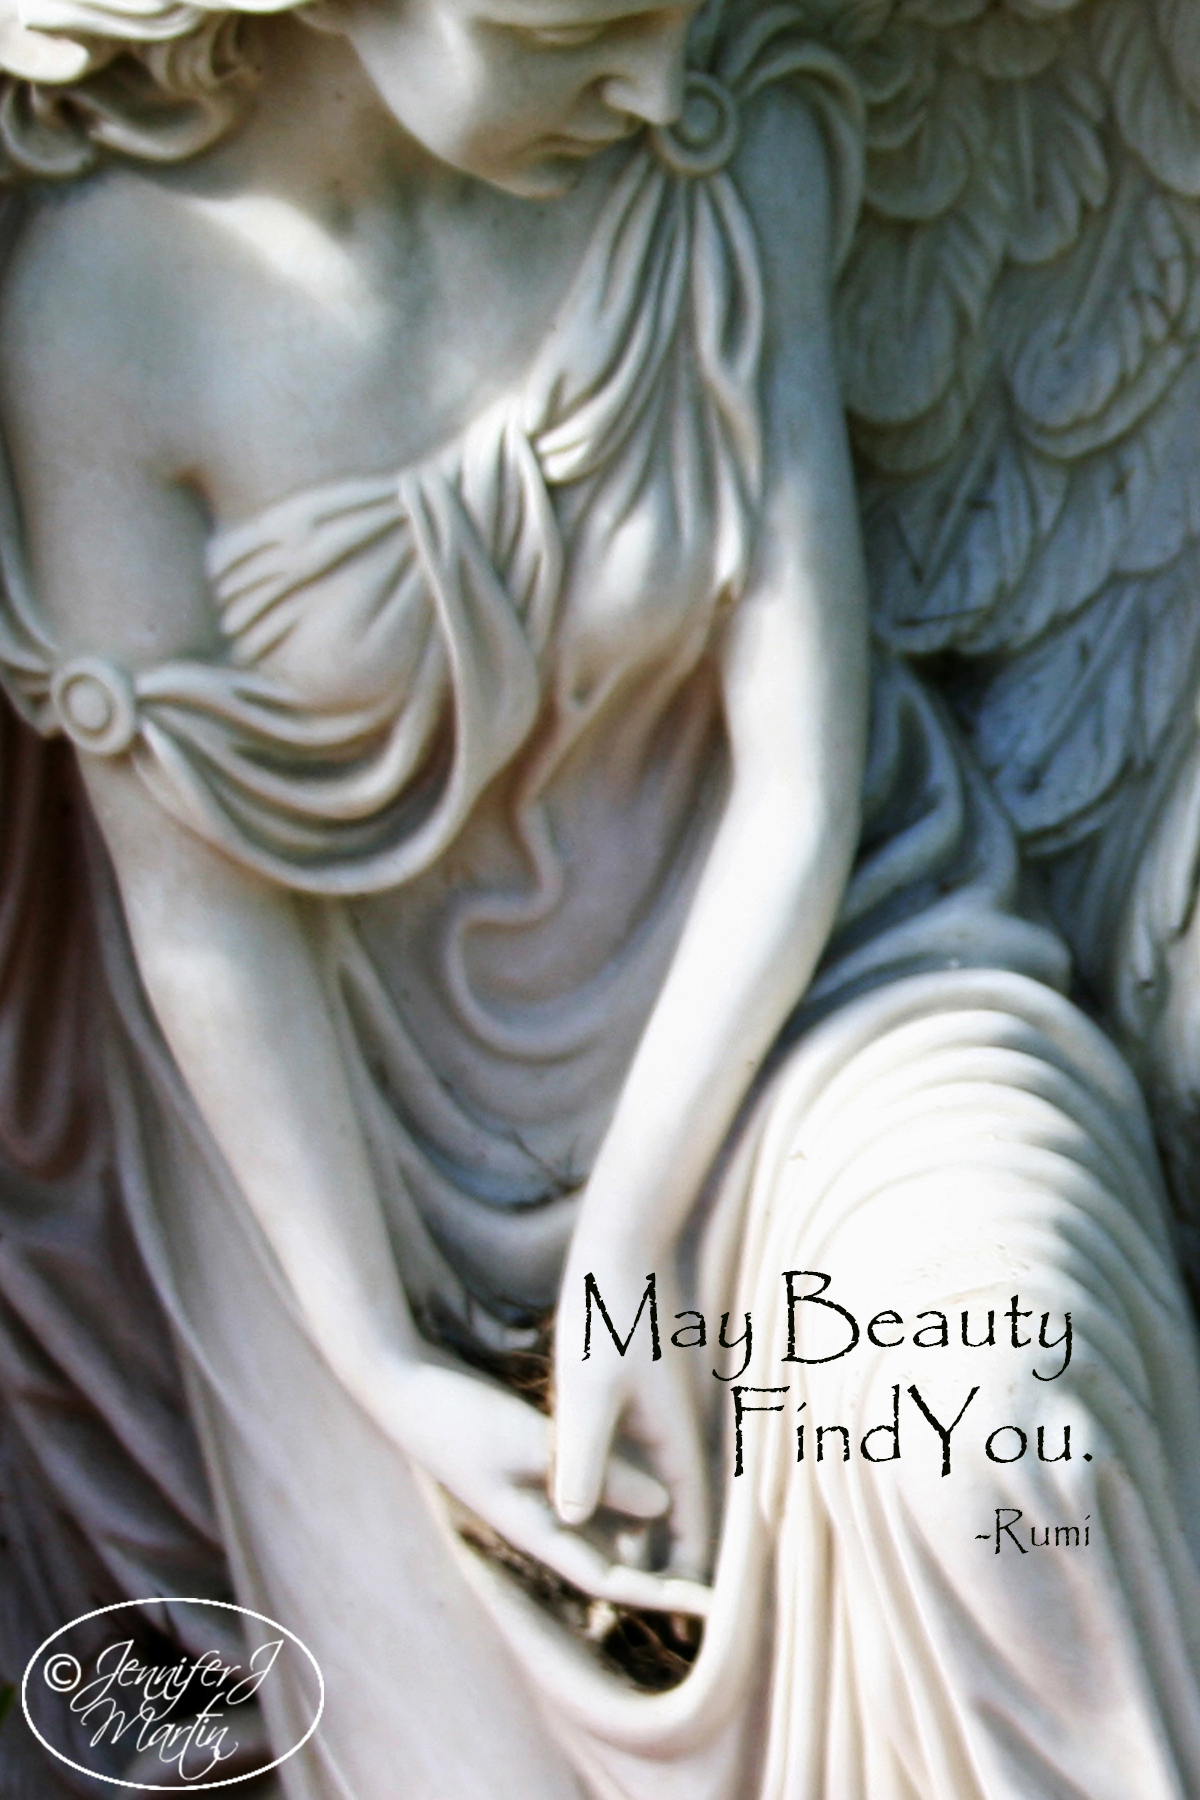 May Beauty Find You (Rumi) - Massimo's Angel